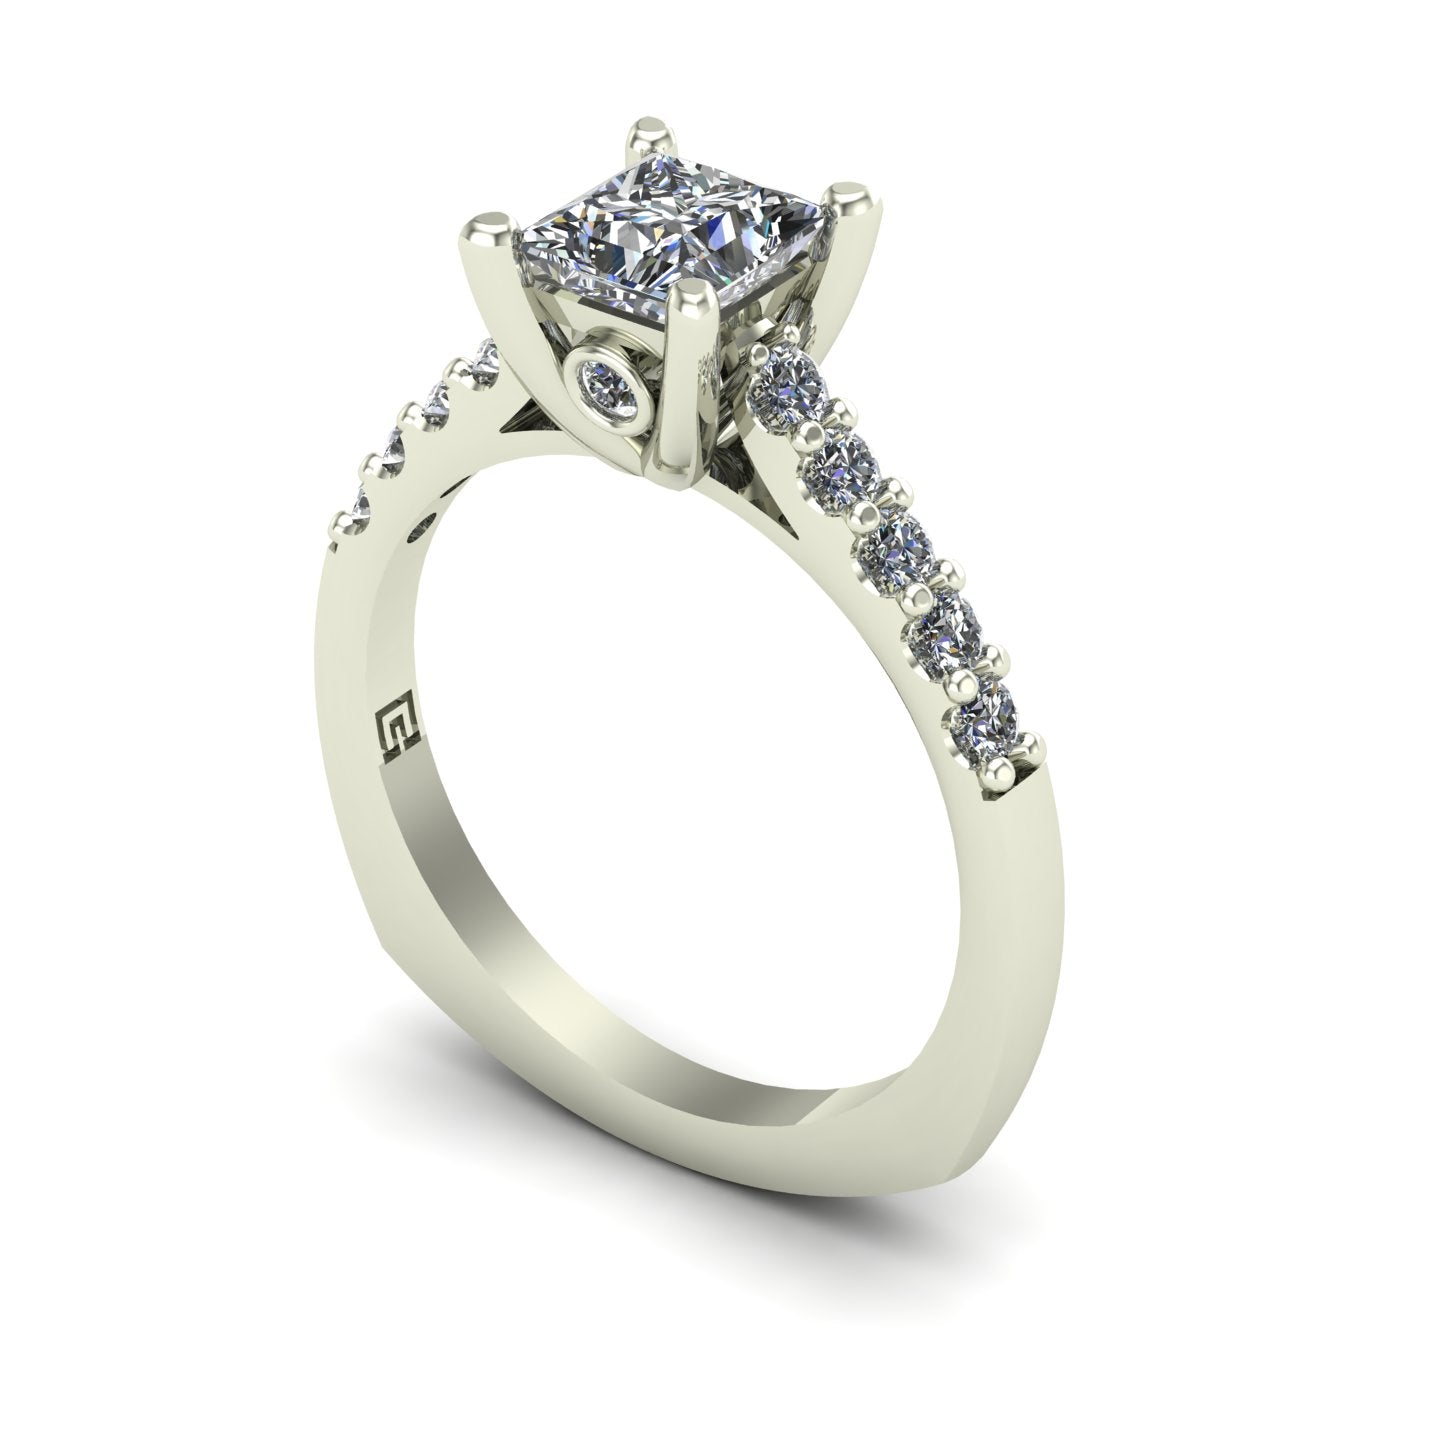 Princess diamond simple engagement ring in 14k white gold